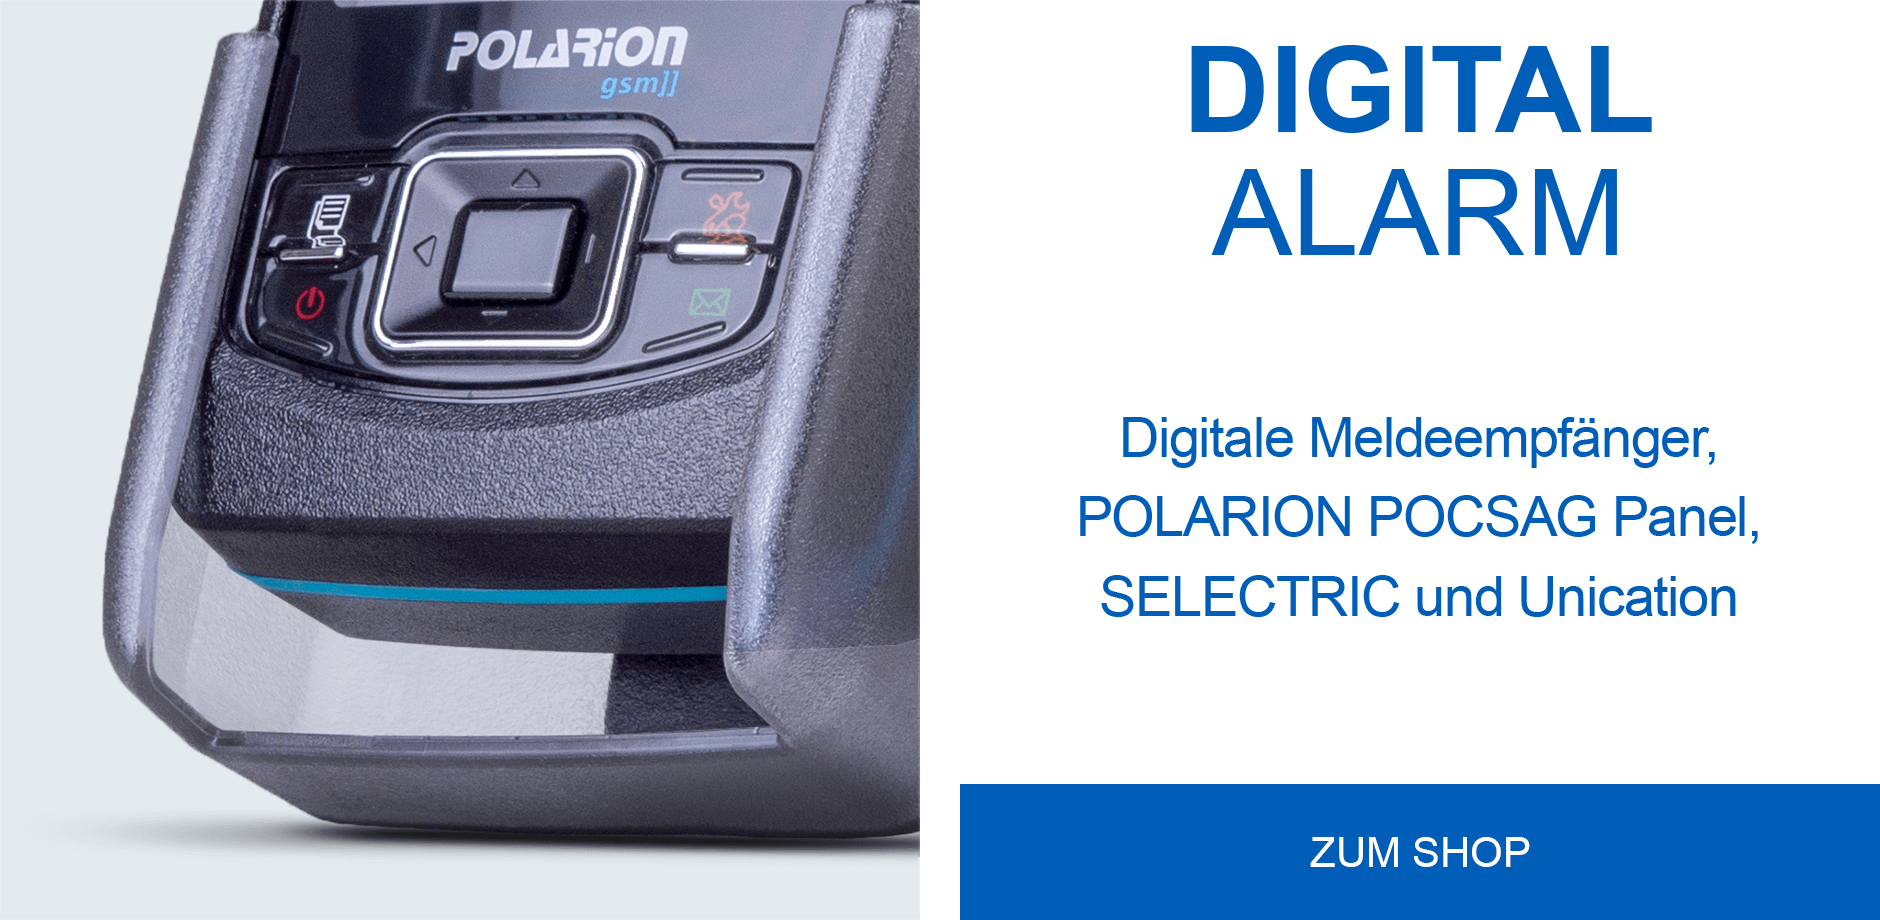 SELECTRIC Digitalalarm